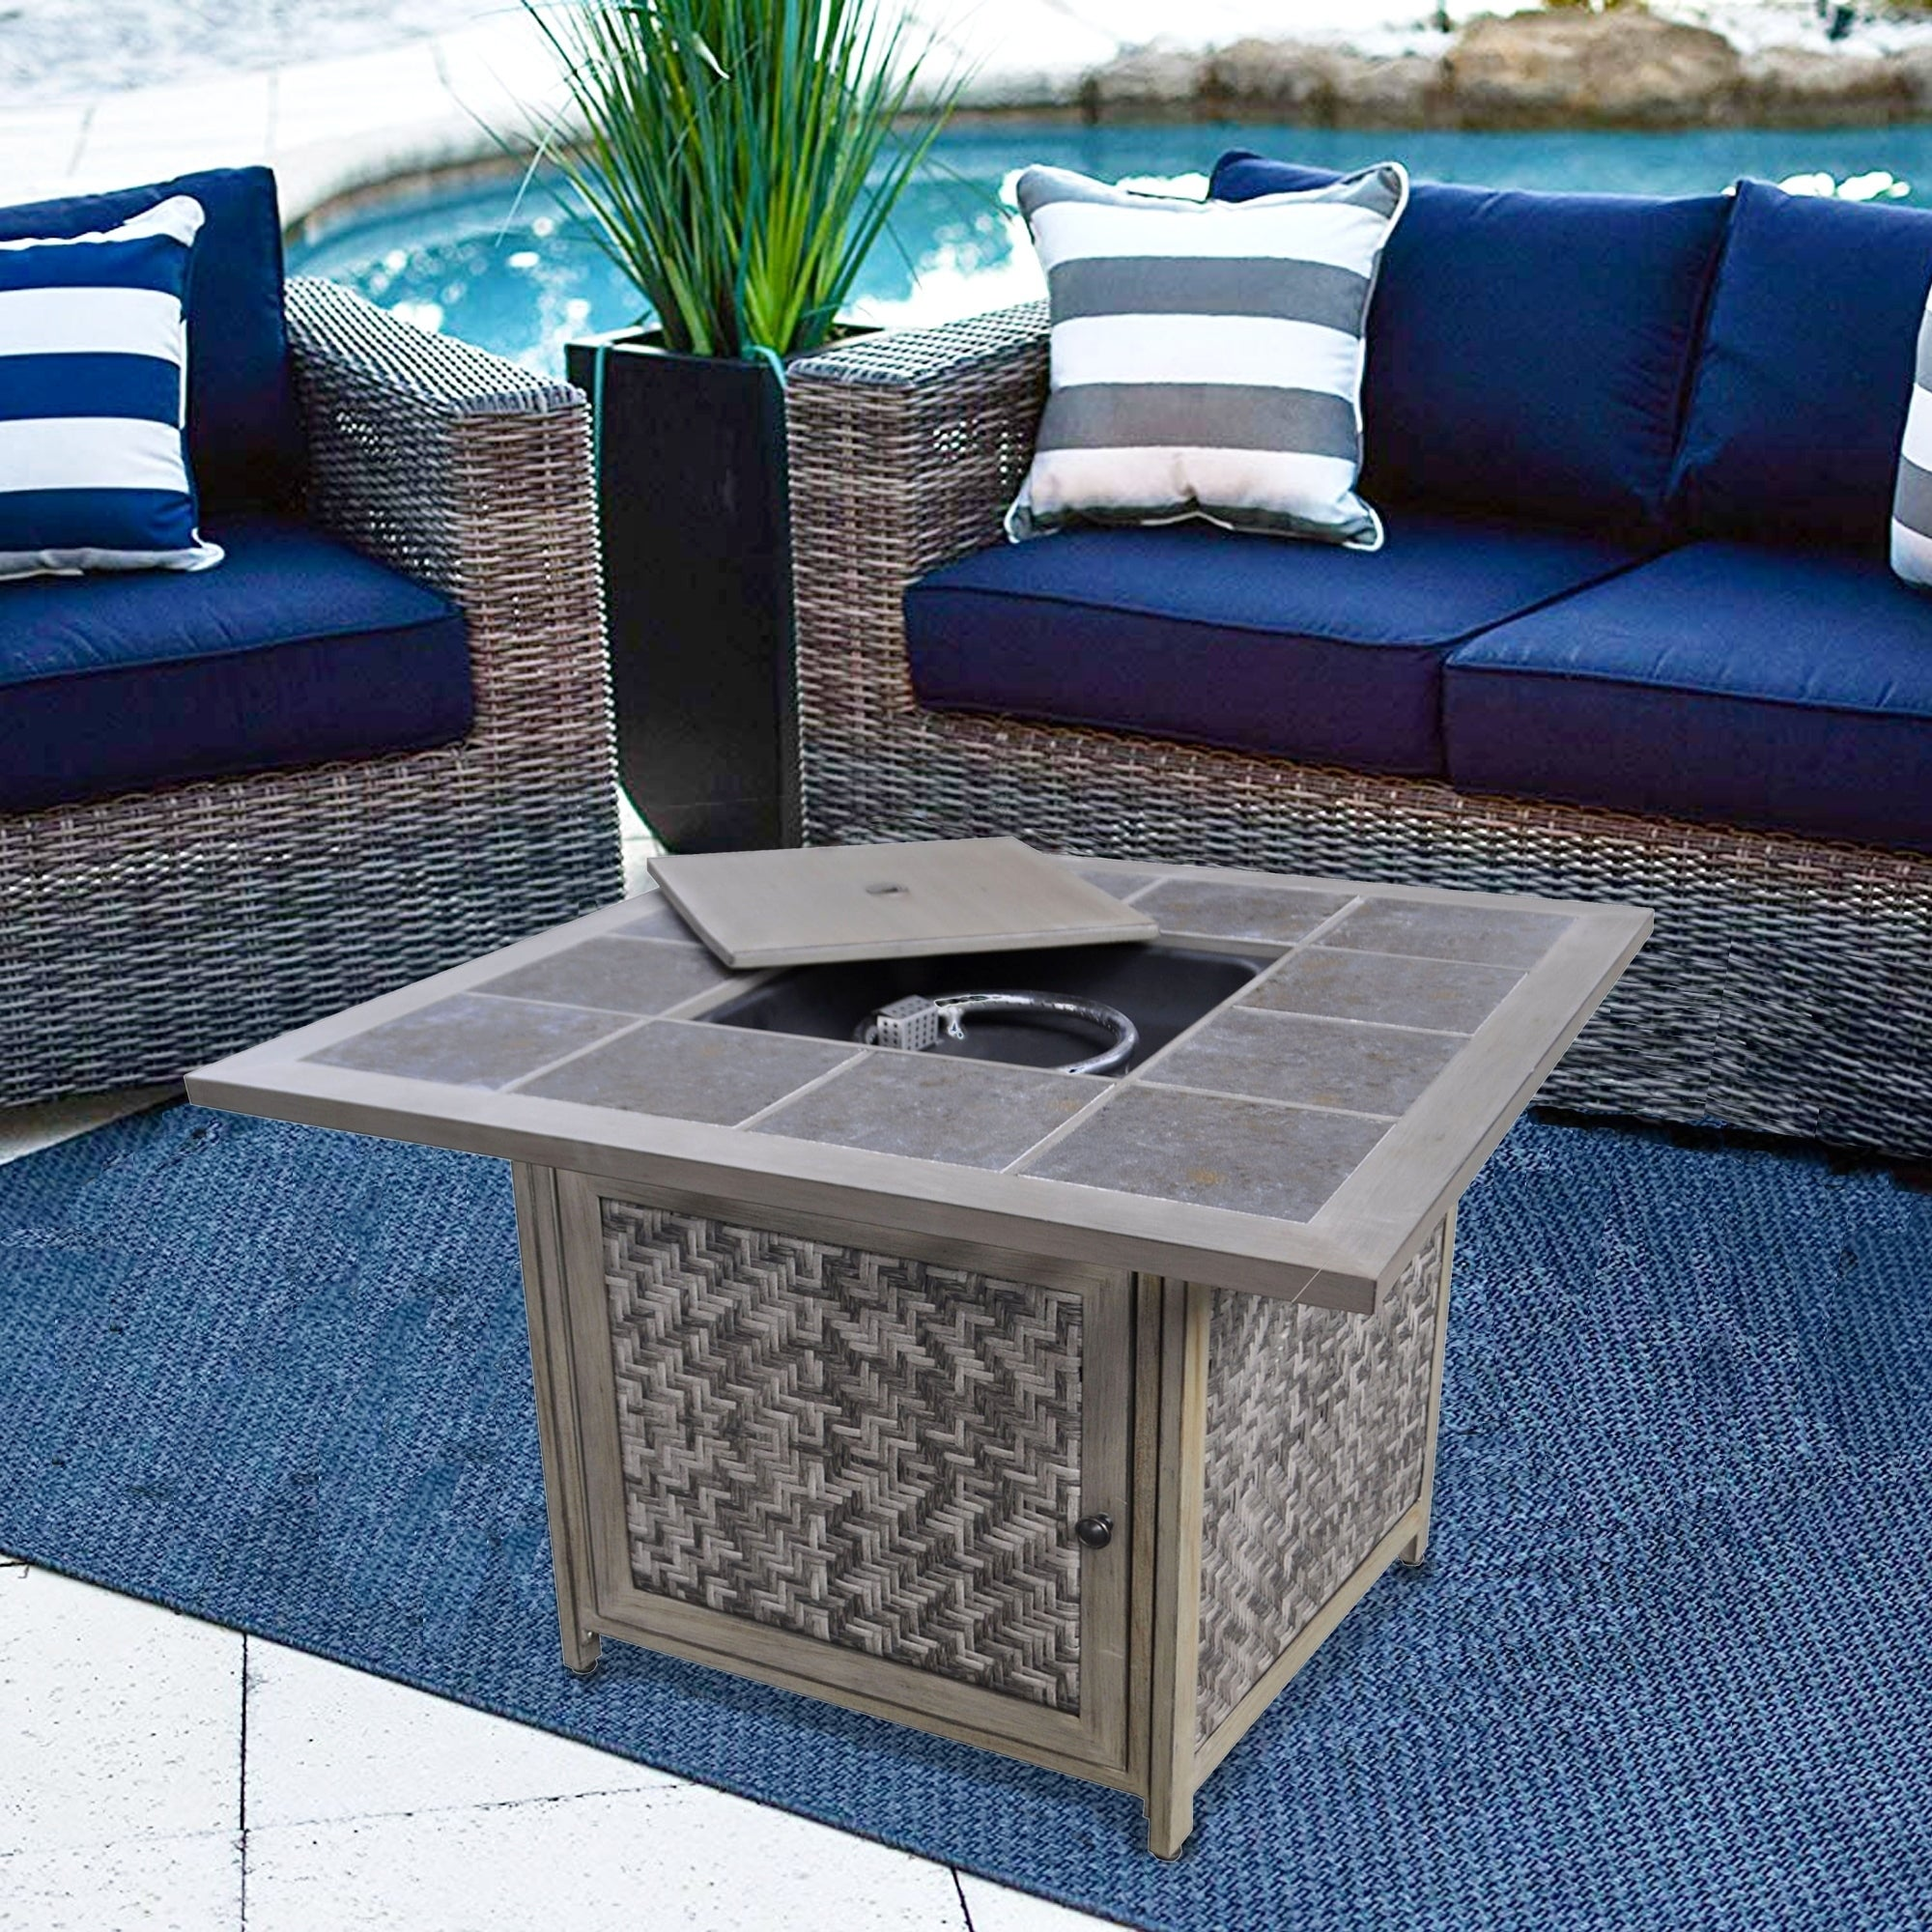 Picture of: Outdoor 37 Square Fire Pit Table Outdoor Propane Fire Pit With Wicker Base For Party Yard Garden Grey Overstock 29944724